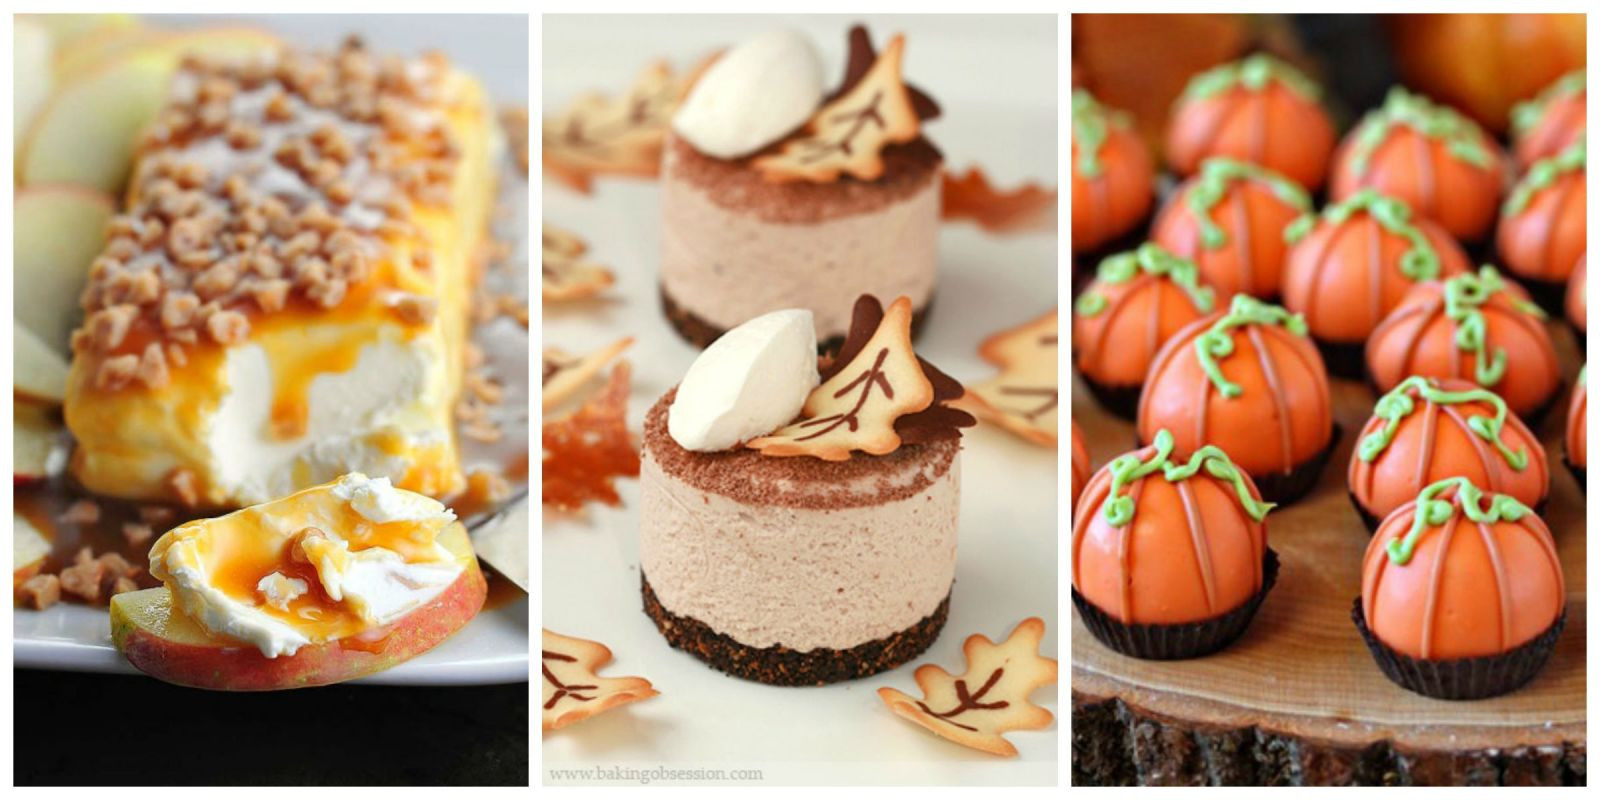 Fall Desserts For Kids  35 Easy Fall Dessert Recipes Best Treats for Autumn Parties